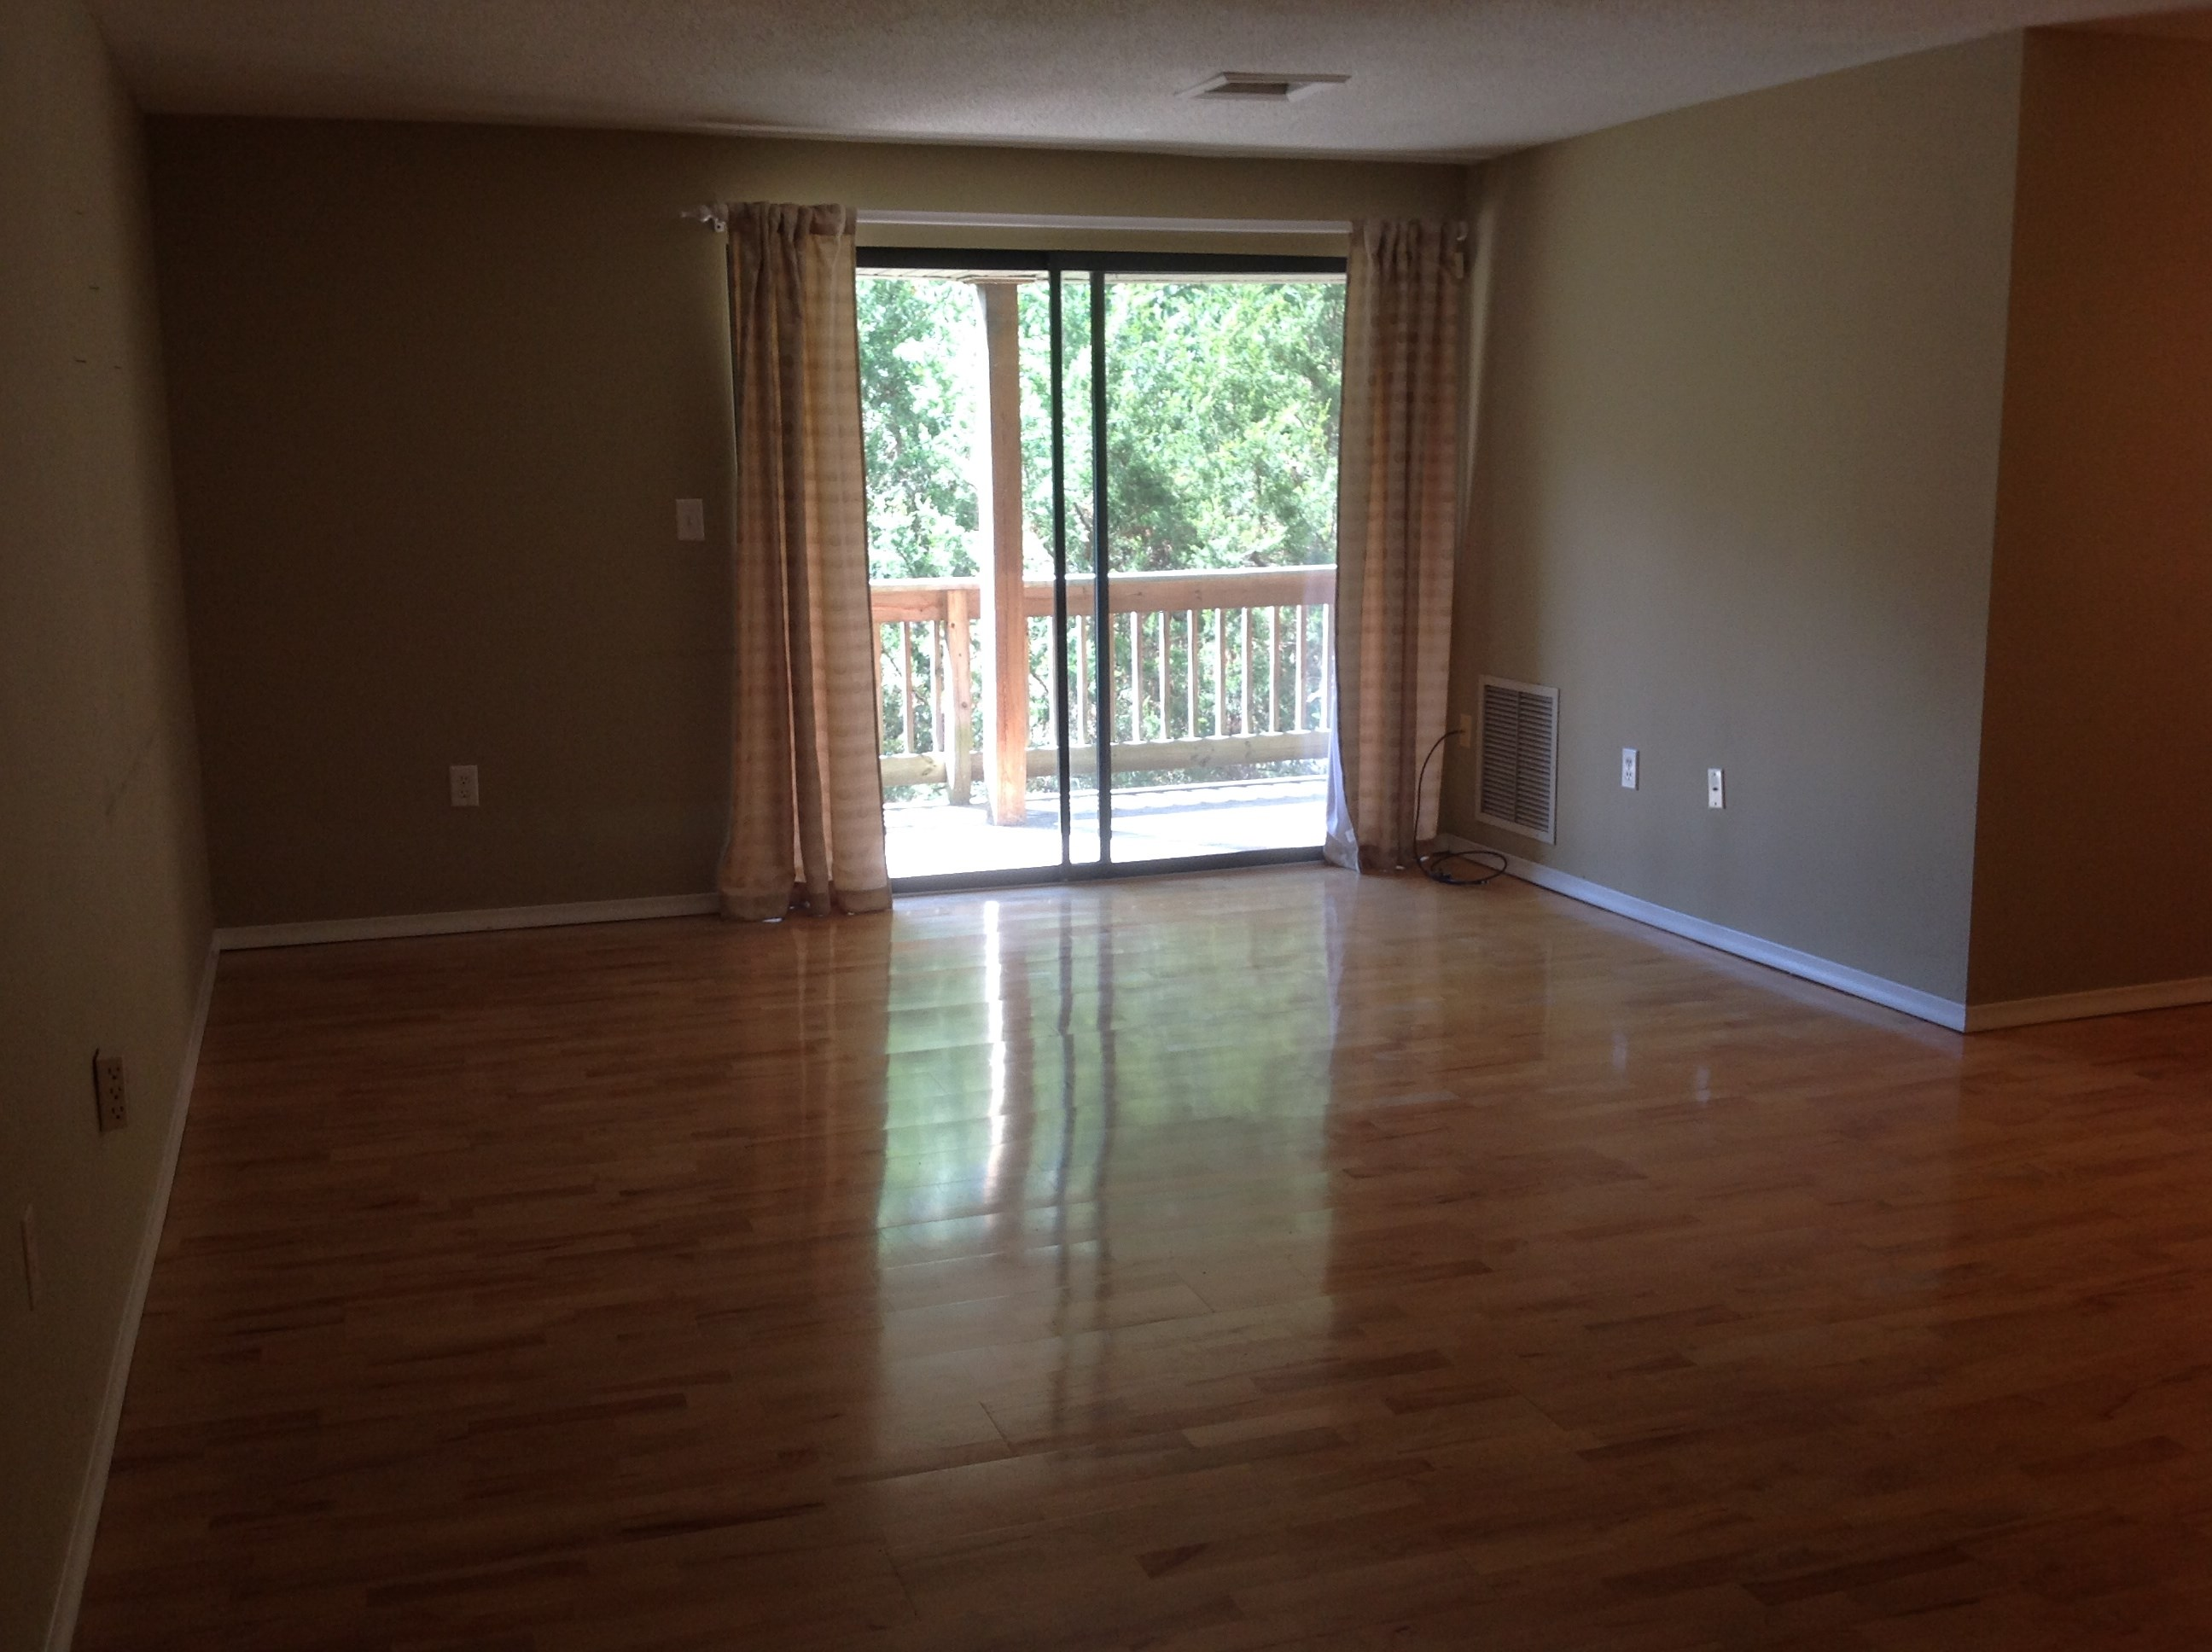 House For Rent In Hartford Metro Area Apartments Flats Commercial Space Individual House